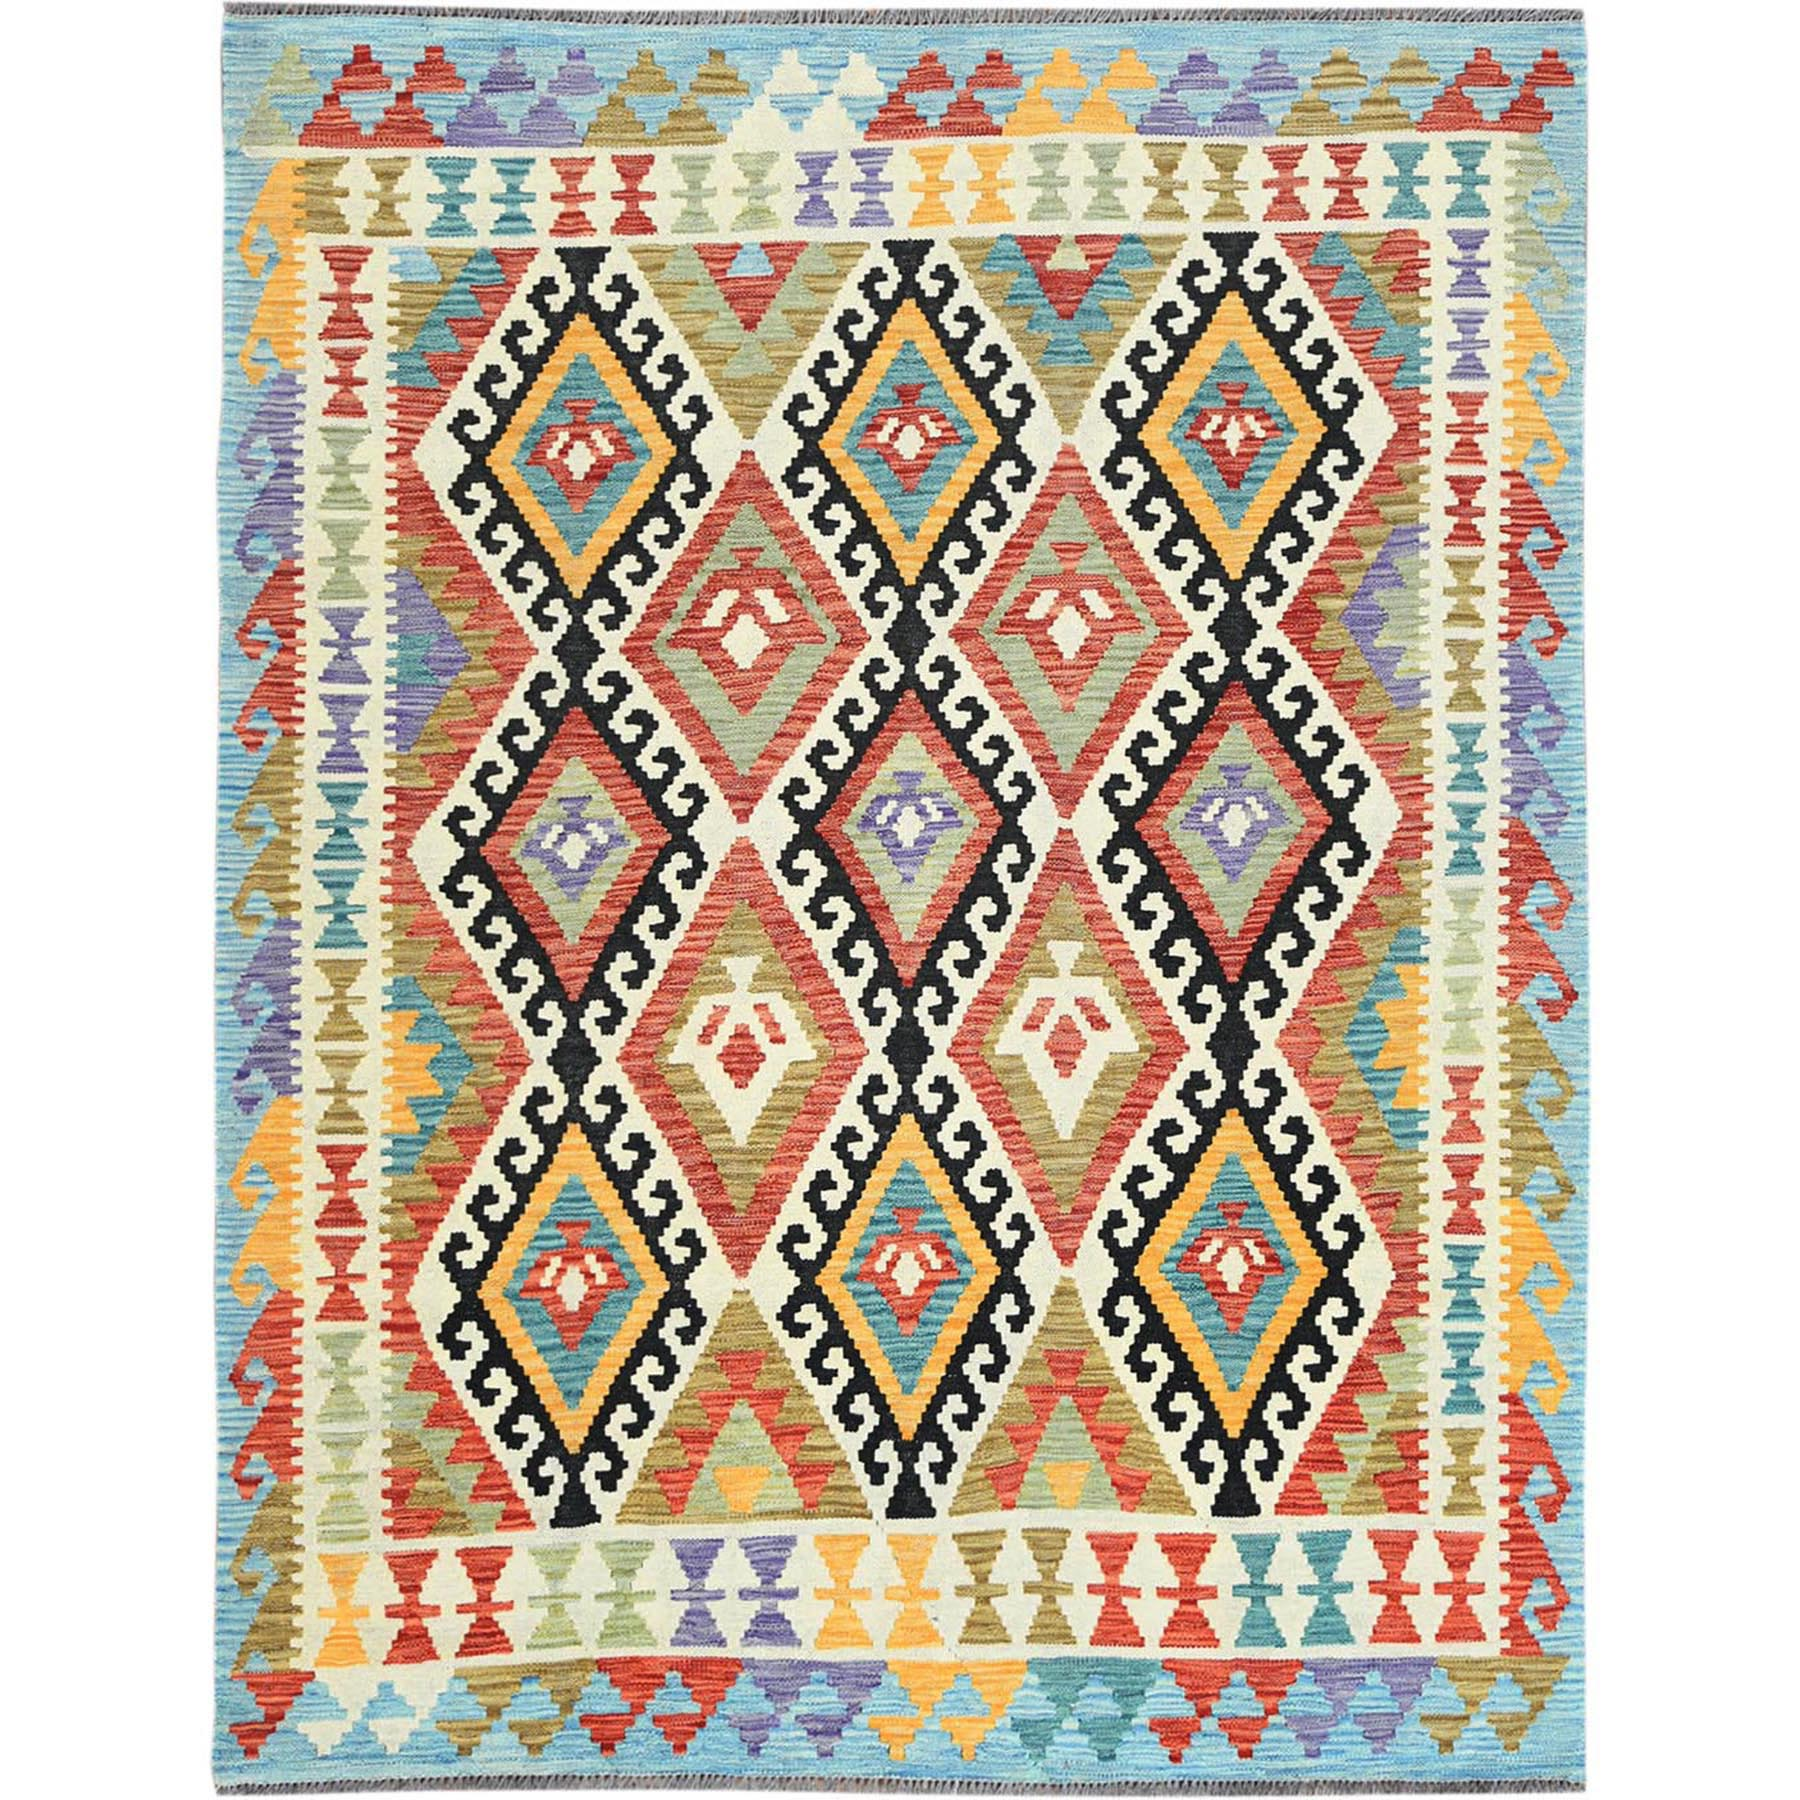 "5'1""x6'5"" Colorful Geometric Design Afghan Kilim Reversible Pliable Wool Hand Woven Oriental Rug"